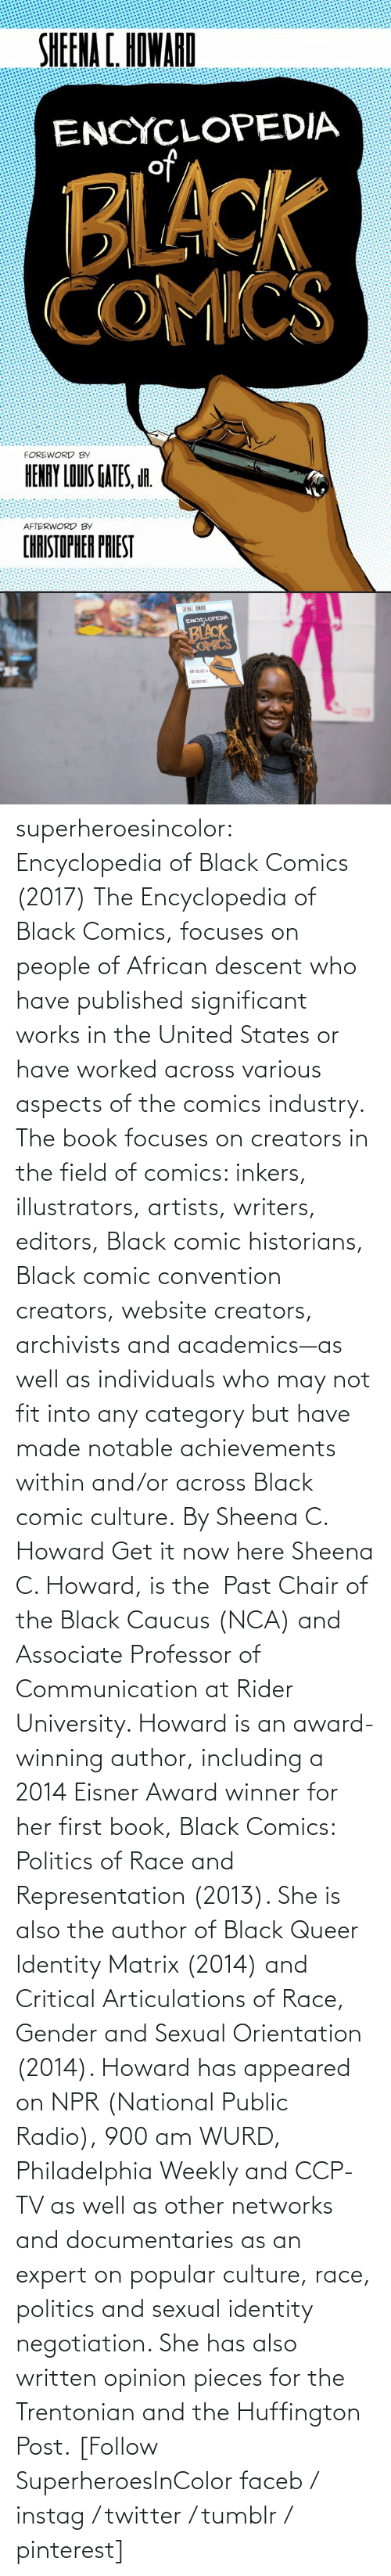 facebook.com: superheroesincolor: Encyclopedia of Black Comics (2017) The Encyclopedia of Black Comics, focuses on people of African descent who have published significant works in the United States or have worked across various aspects of the comics industry.  The book focuses on creators in the field of comics: inkers, illustrators, artists, writers, editors, Black comic historians, Black comic convention creators, website creators, archivists and academics—as well as individuals who may not fit into any category but have made notable achievements within and/or across Black comic culture. By Sheena C. Howard Get it now here  Sheena C. Howard, is the  Past Chair of the Black Caucus (NCA) and Associate Professor of Communication at Rider University. Howard is an award-winning author, including a 2014 Eisner Award winner for her first book, Black Comics: Politics of Race and Representation (2013). She is also the author of Black Queer Identity Matrix (2014) and Critical Articulations of Race, Gender and Sexual Orientation (2014). Howard has appeared on NPR (National Public Radio), 900 am WURD, Philadelphia Weekly and CCP-TV as well as other networks and documentaries as an expert on popular culture, race, politics and sexual identity negotiation. She has also written opinion pieces for the Trentonian and the Huffington Post.   [Follow SuperheroesInColor faceb / instag / twitter / tumblr / pinterest]